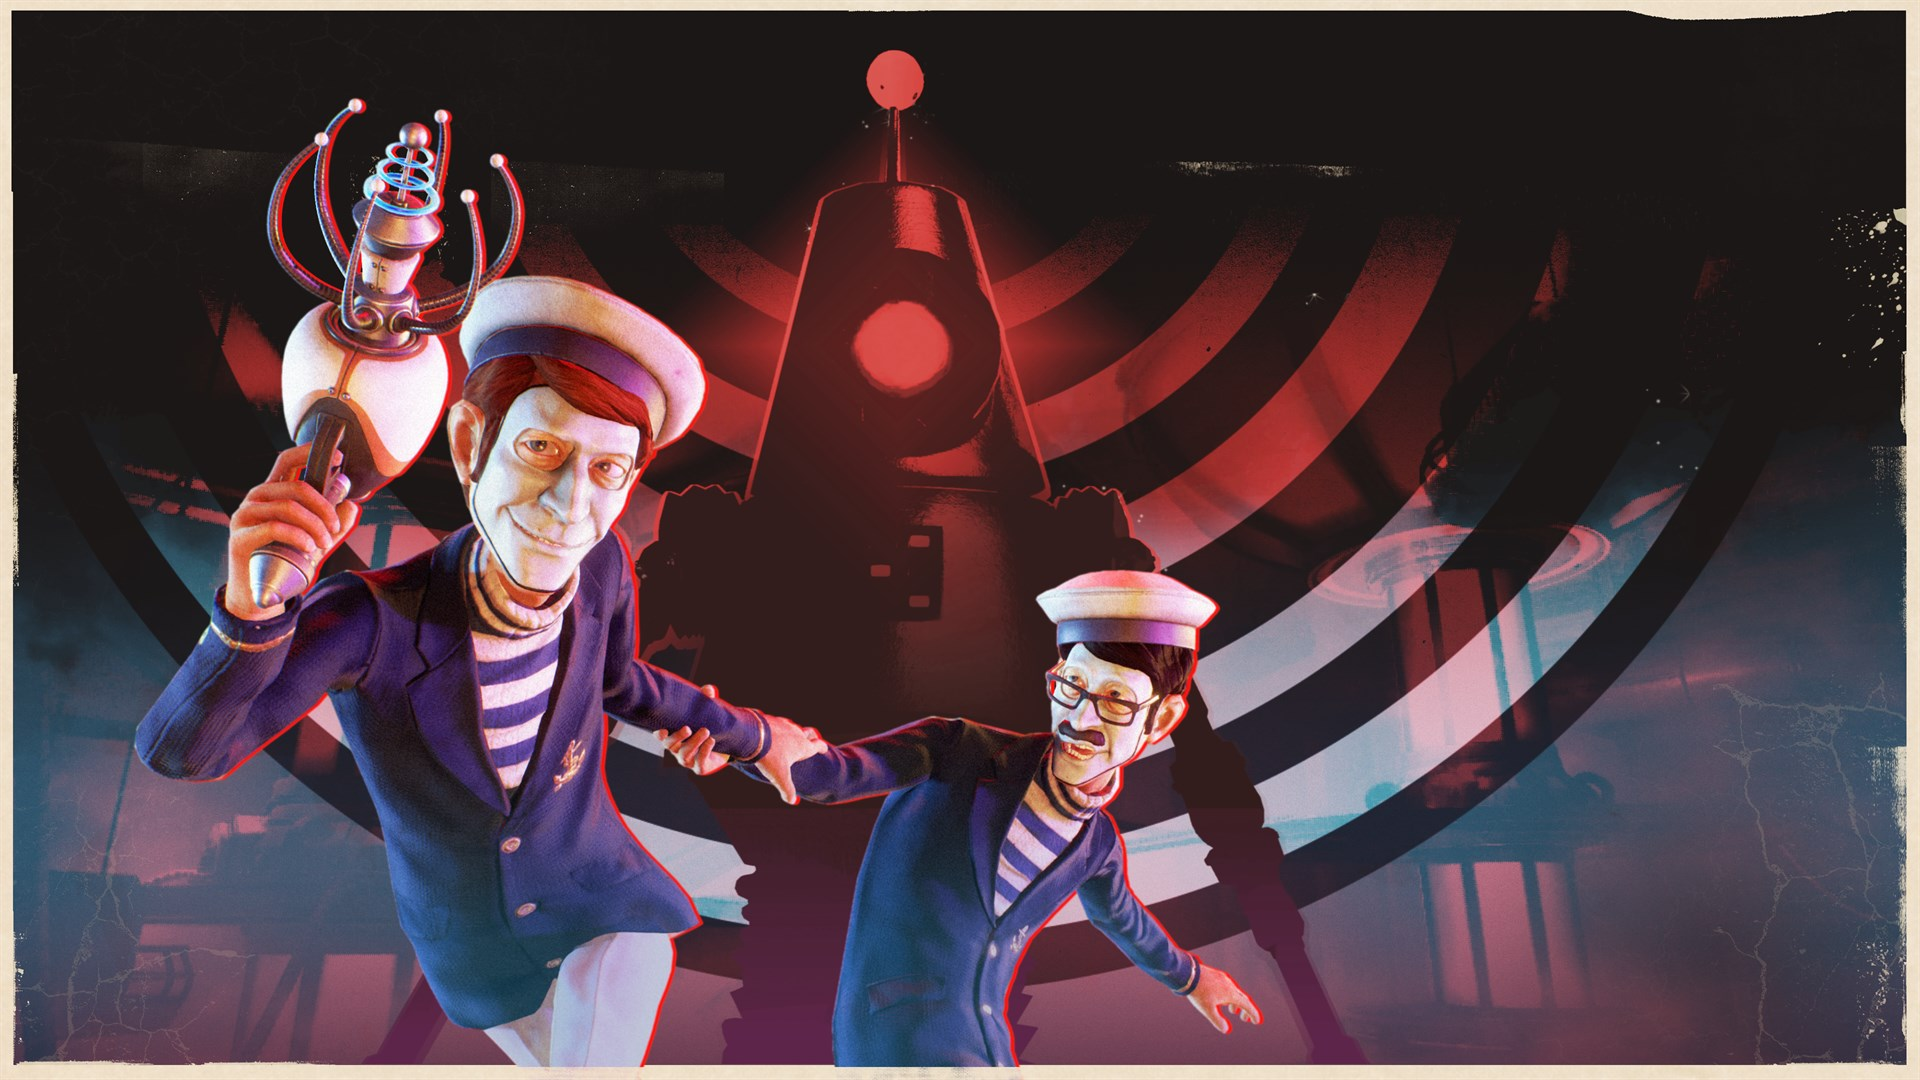 We Happy Few - Roger & James in They Came From Below